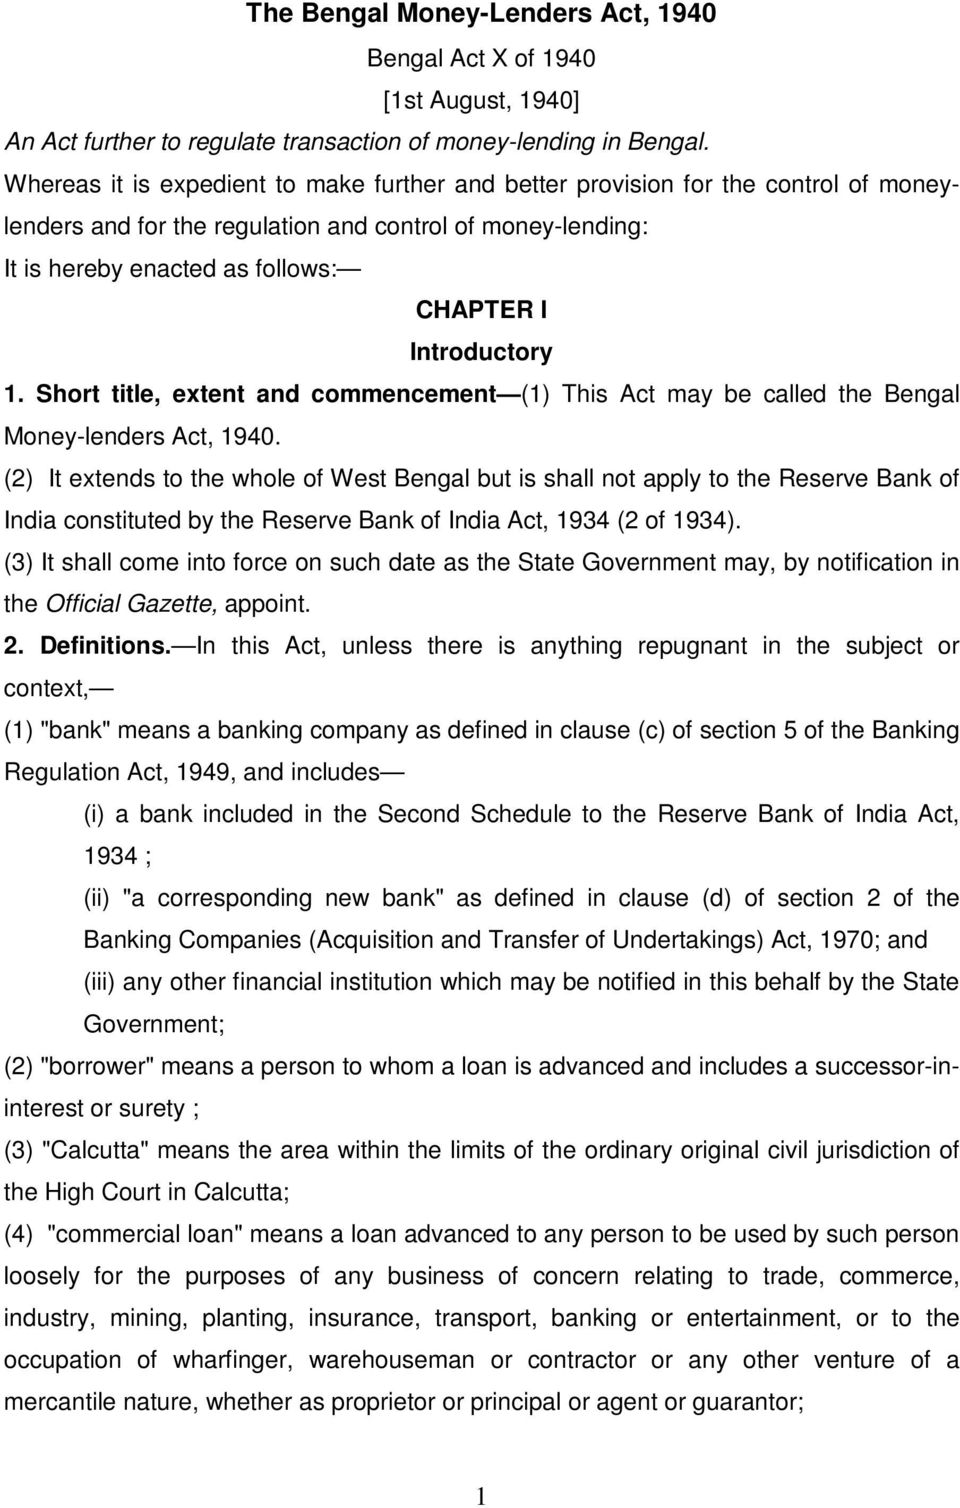 Introductory 1. Short title, extent and commencement (1) This Act may be called the Bengal Money-lenders Act, 1940.